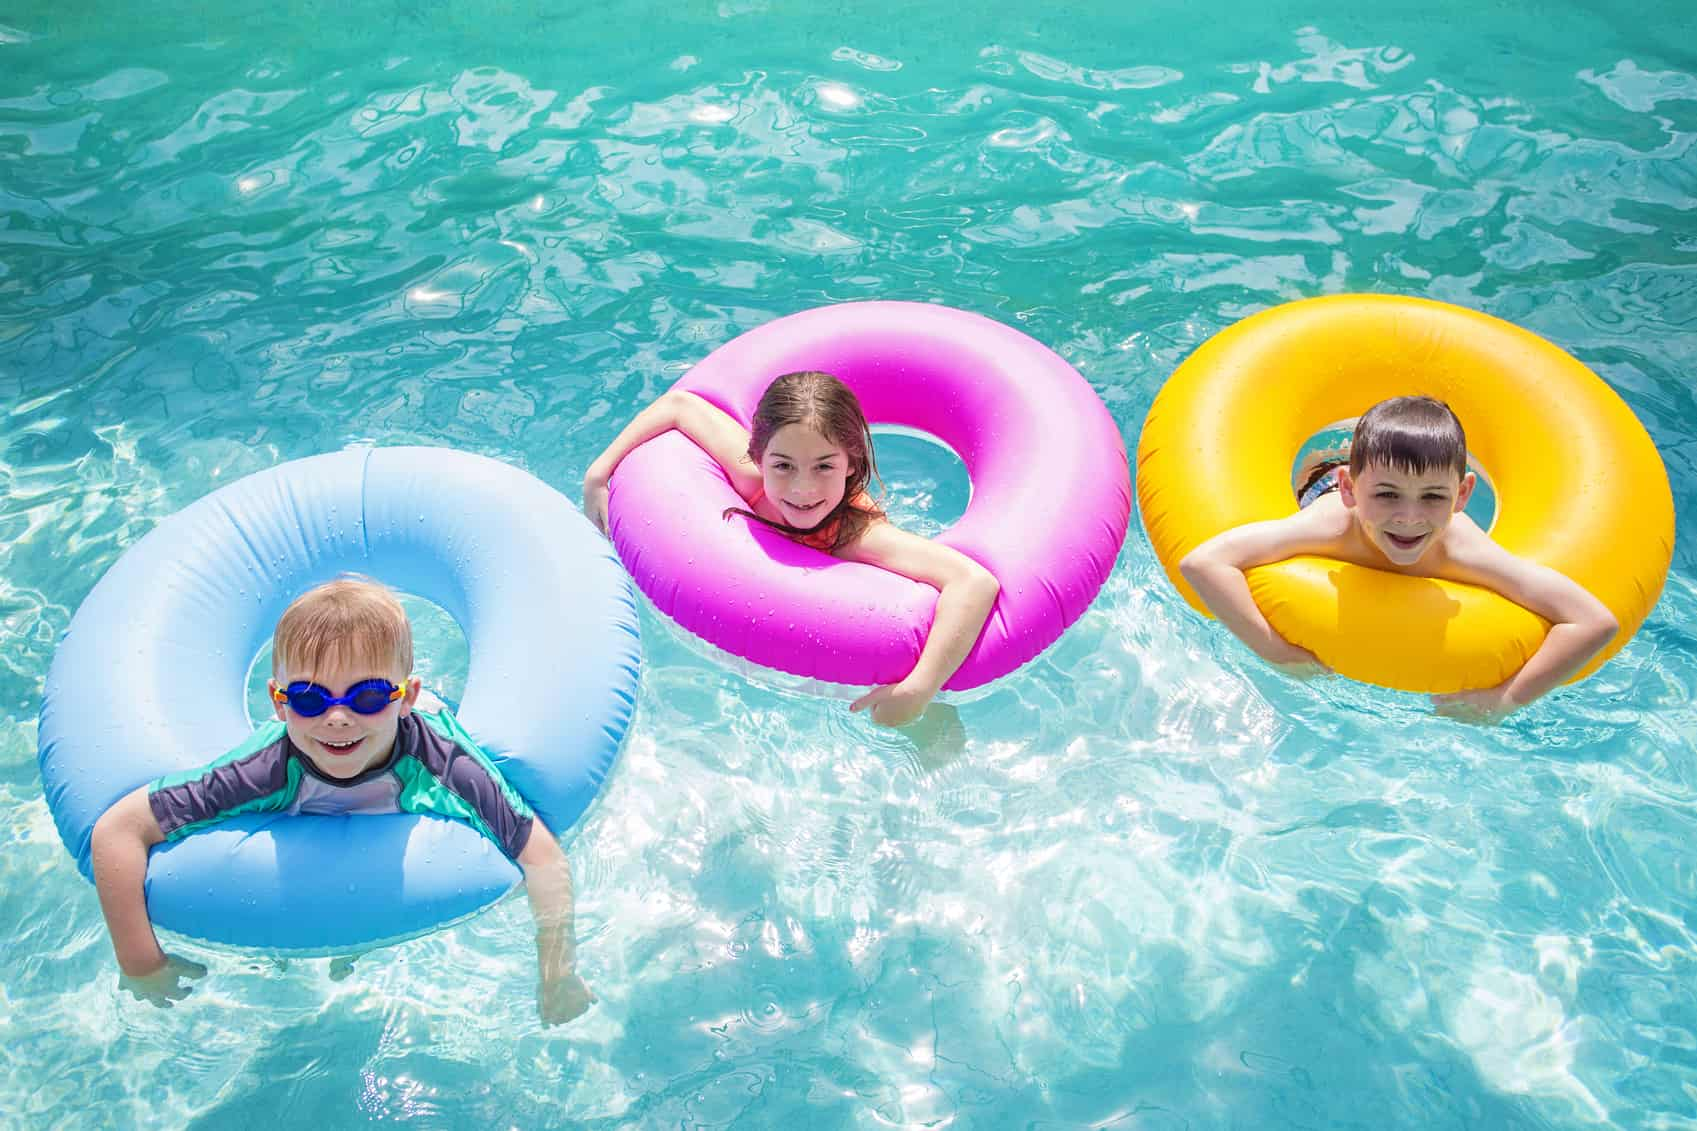 Group Of Kids Playing On Inflatable Tubes In Swimming Pool